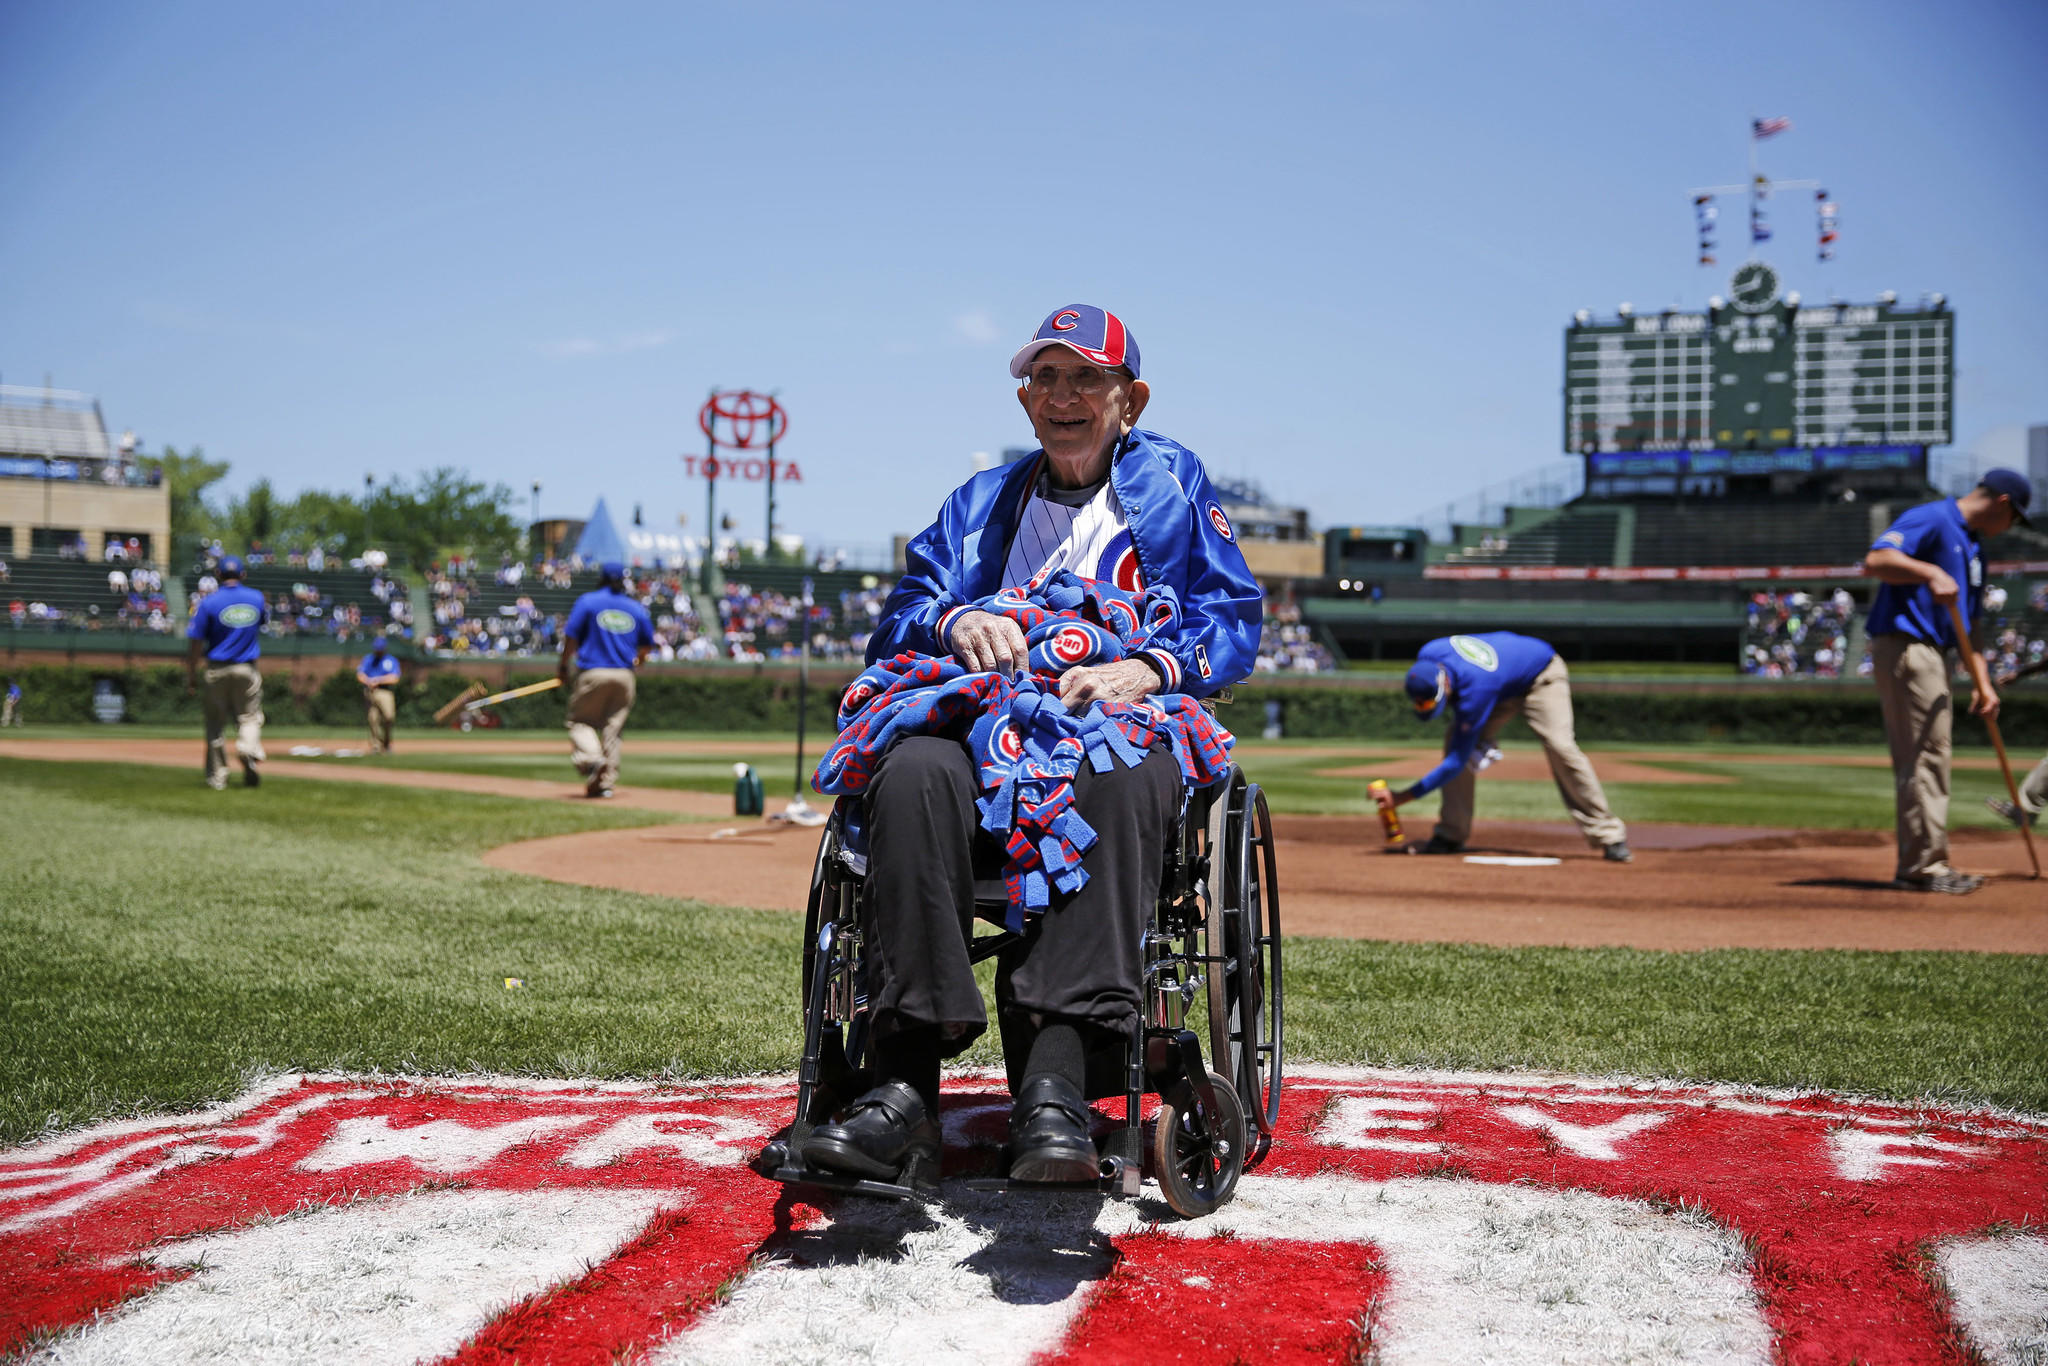 Louis Reinhart, a 100-year-old retired farmer from Metamora, poses for a photograph during pre-game activities.